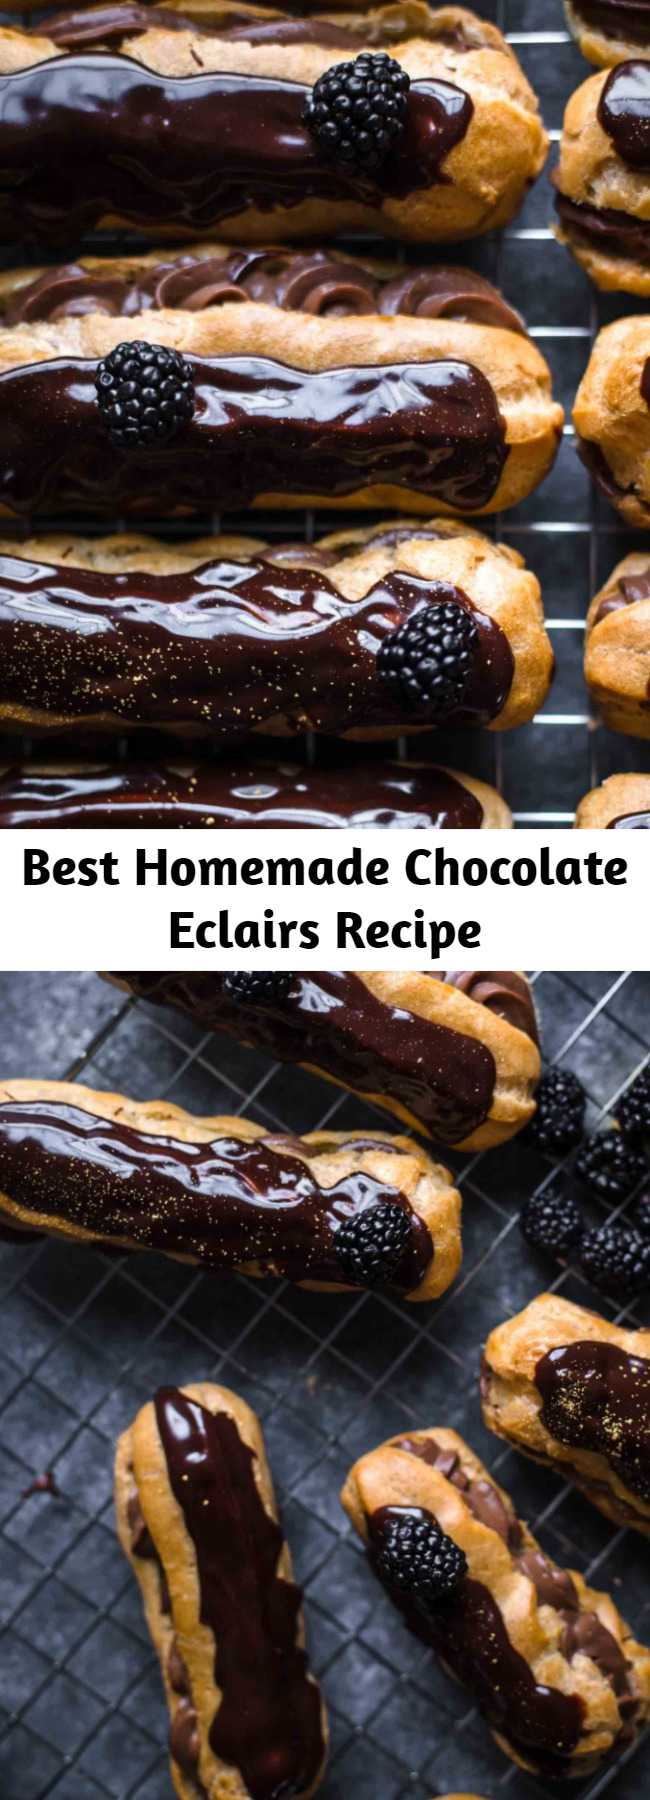 Best Homemade Chocolate Eclairs Recipe - These are the best homemade Chocolate Eclairs you will ever have. It's an original French recipe! Light and airy Pâte à Choux filled with super creamy chocolate cream filling and topped with delicious chocolate ganache. #eclairs #chocolate #baking #sweets #desserts